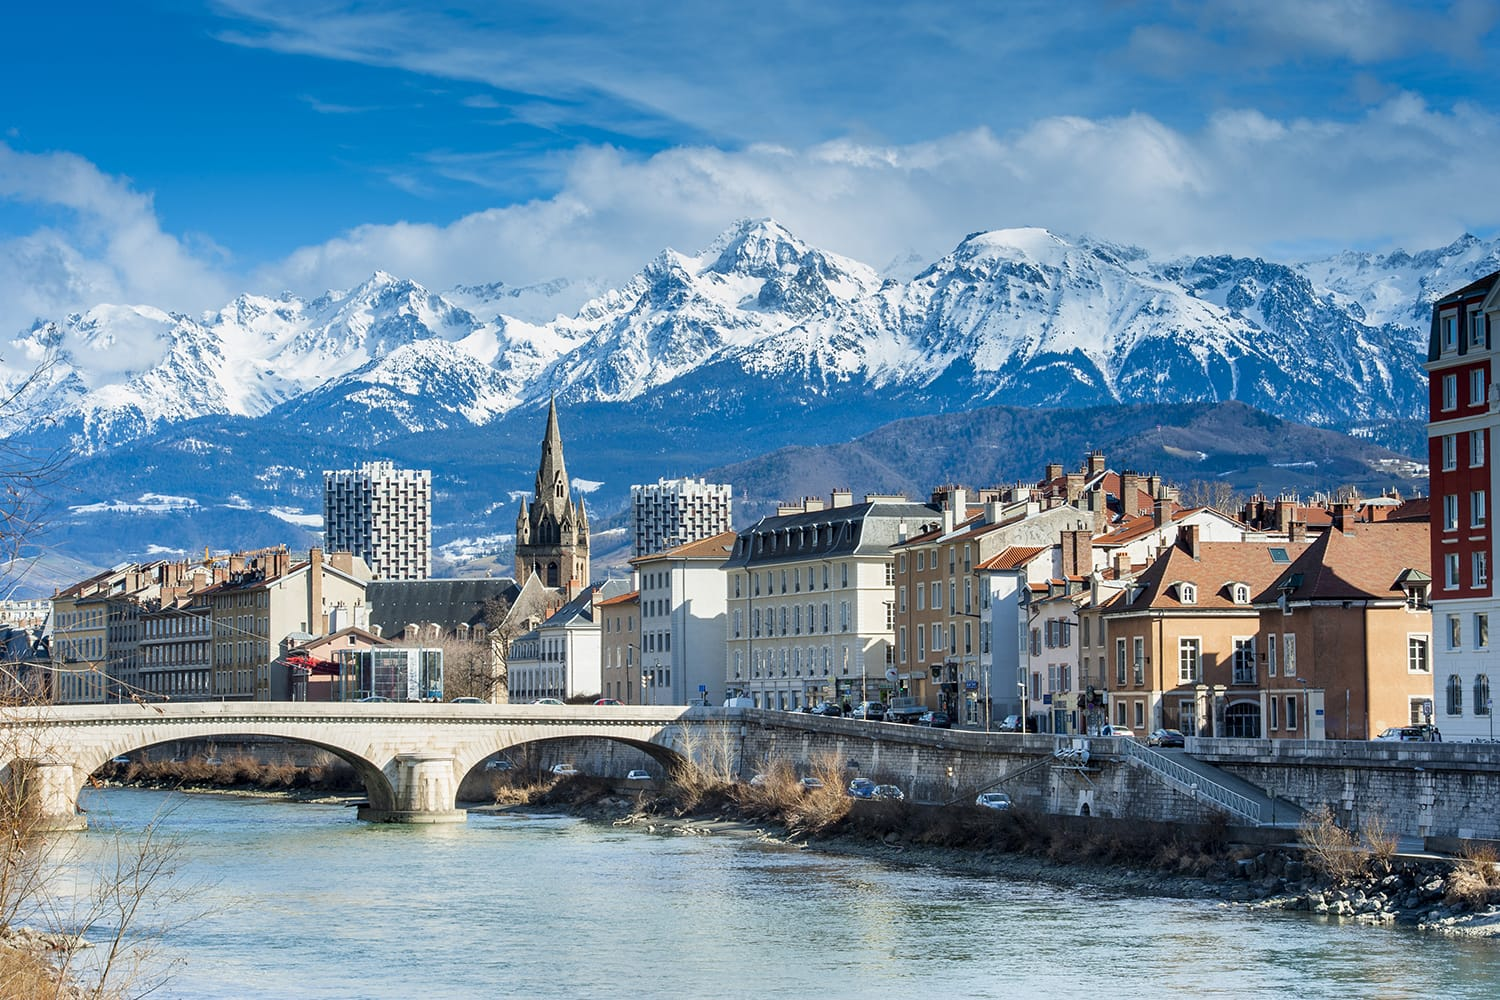 Grenoble in France